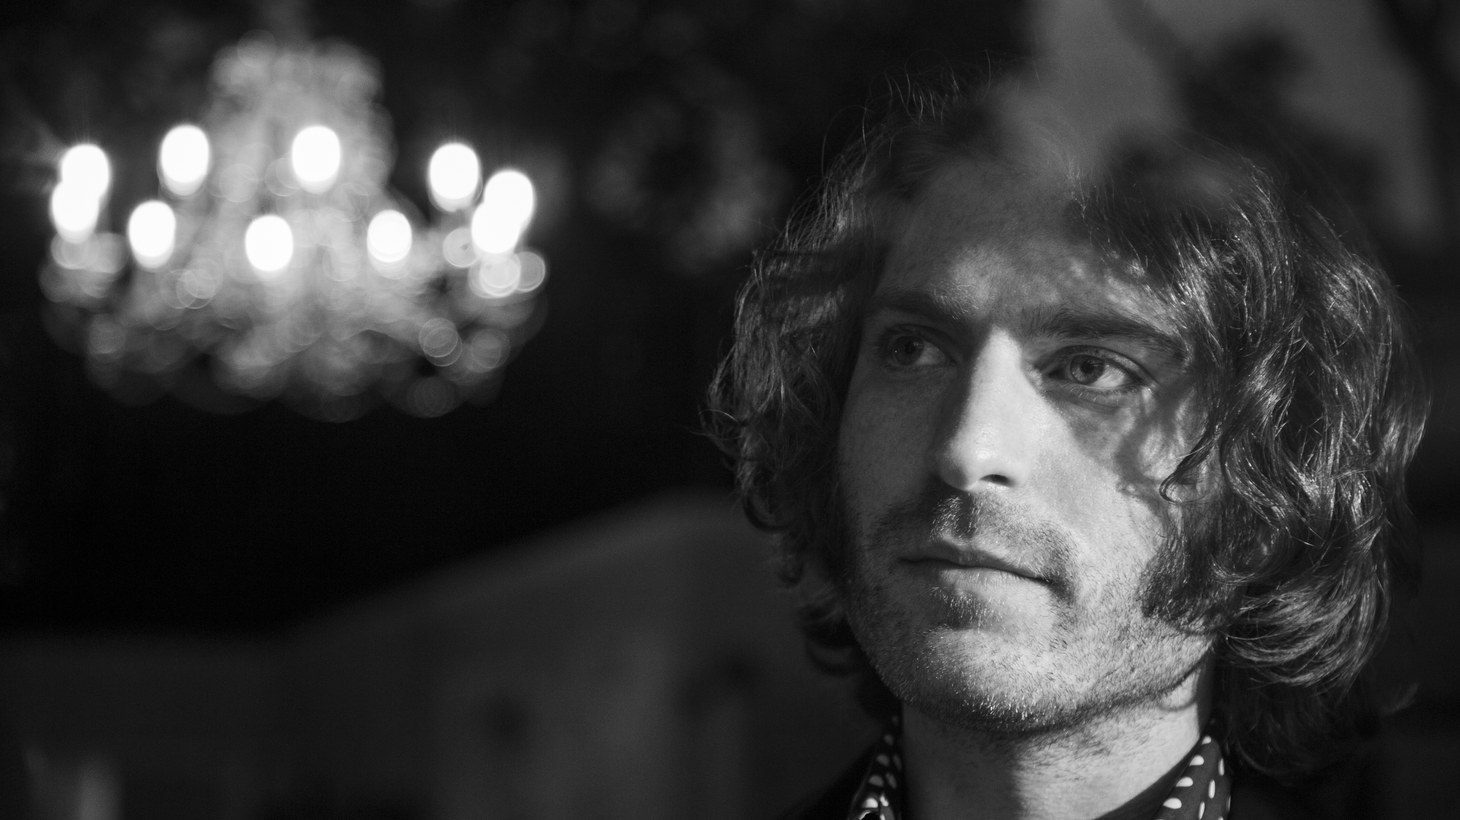 Bay Area songwriter Logan Ledger channels a cosmic country sound with the help of legendary producer T Bone Burnett.